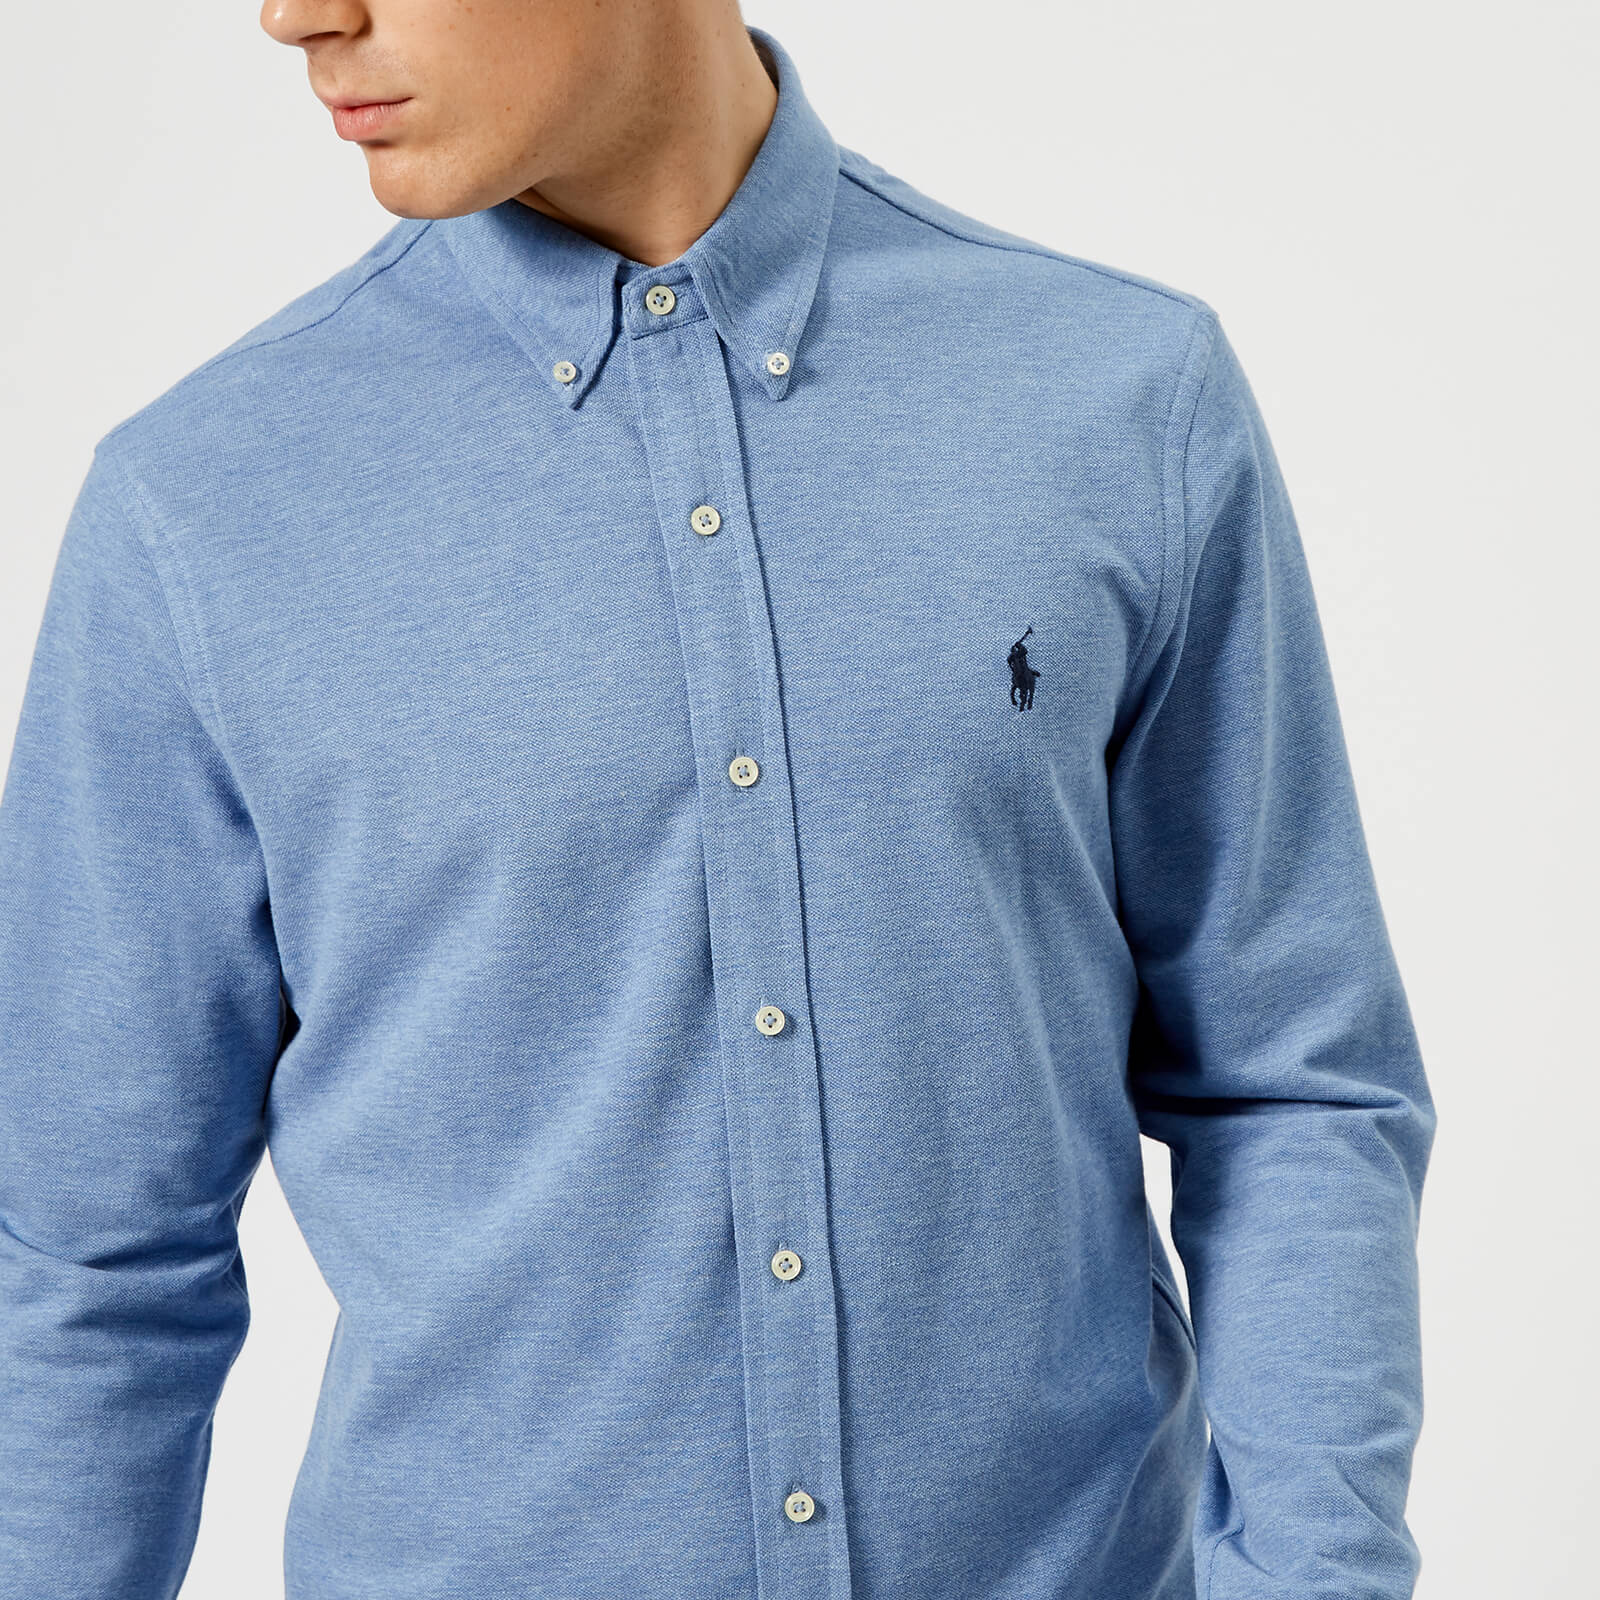 ed44f09e Polo Ralph Lauren Men's Featherweight Long Sleeve Shirt - Blue Heather -  Free UK Delivery over £50